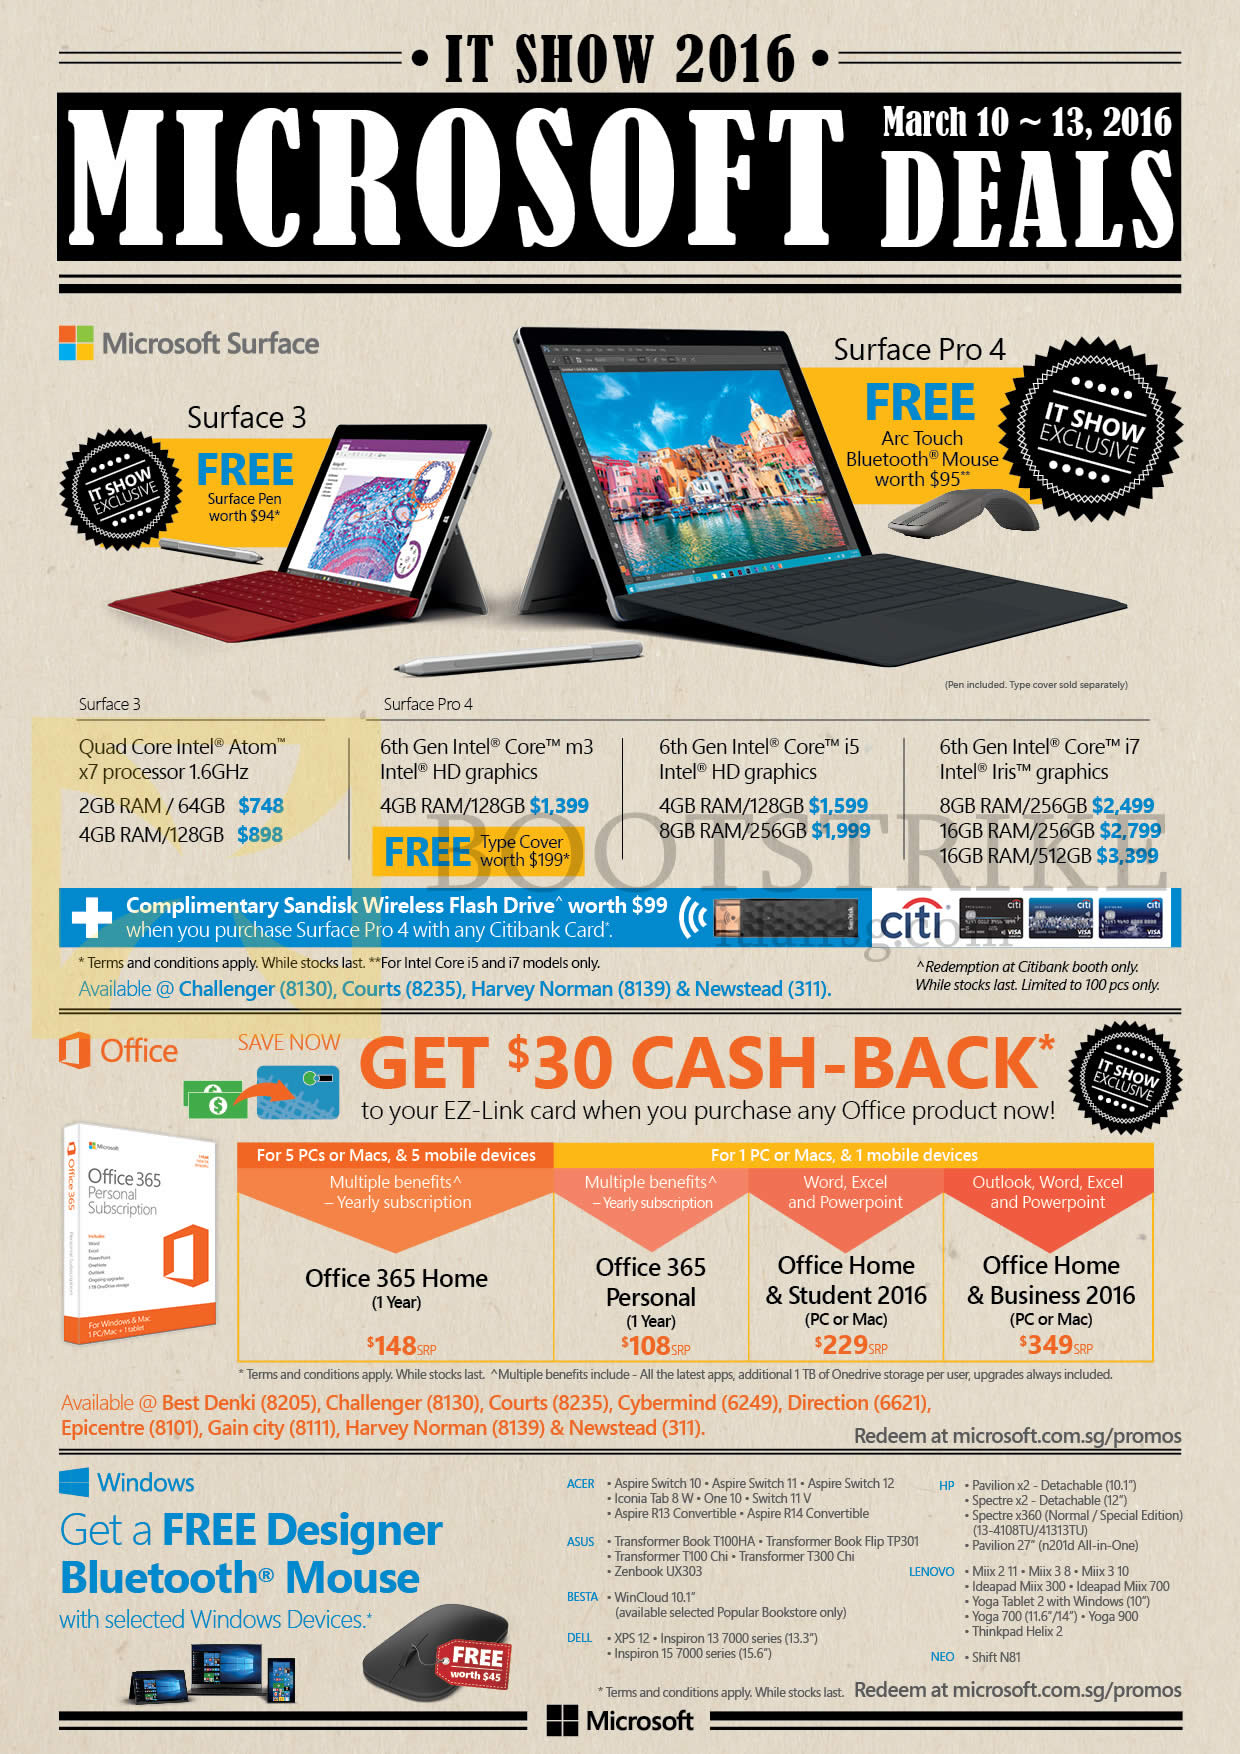 microsoft tablets surface 3 surface pro 4 office 365 home 365